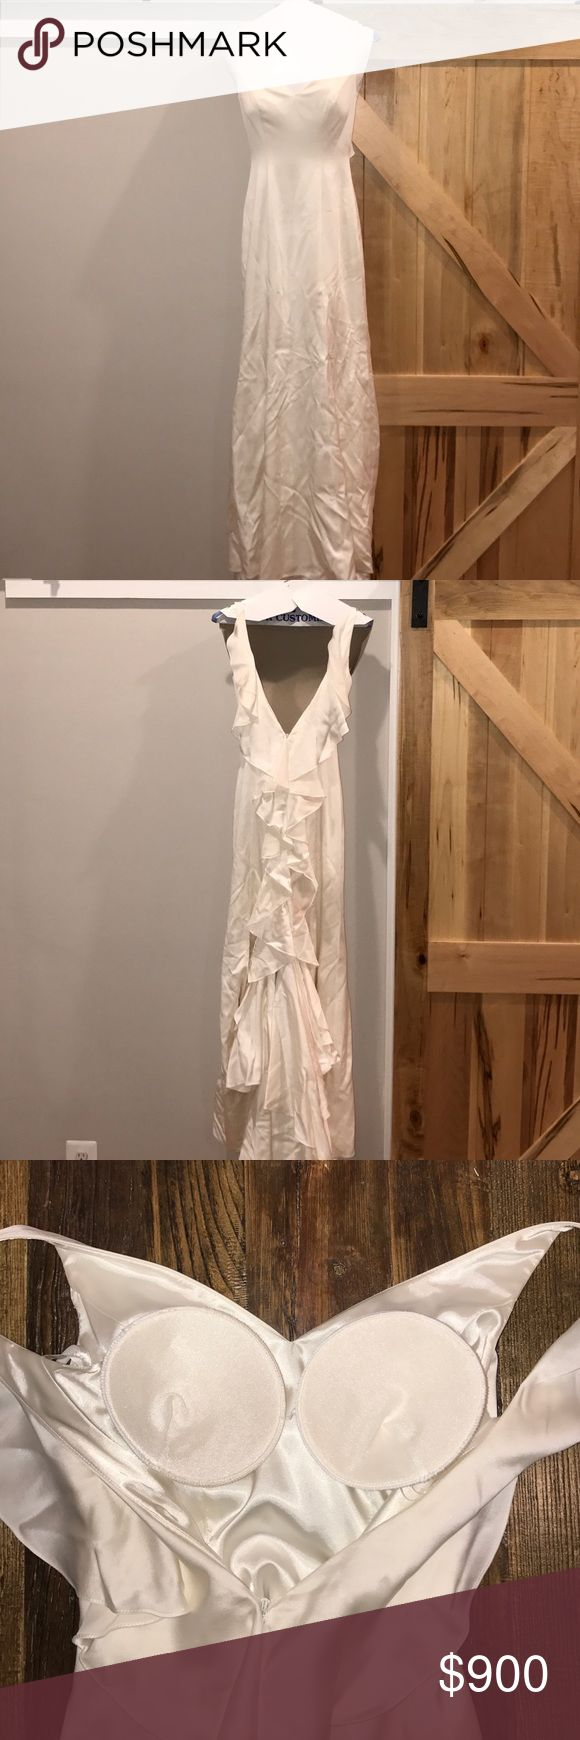 priscilla of boston wedding gown 100% silk, discontinued vineyard collection line, cascading open ruffle back, train with bustle, sewn-in cups (easily to remove if desired), off-white, size 4 on rack but tailored to a 0/2. worn once. priscilla of boston Dresses Wedding